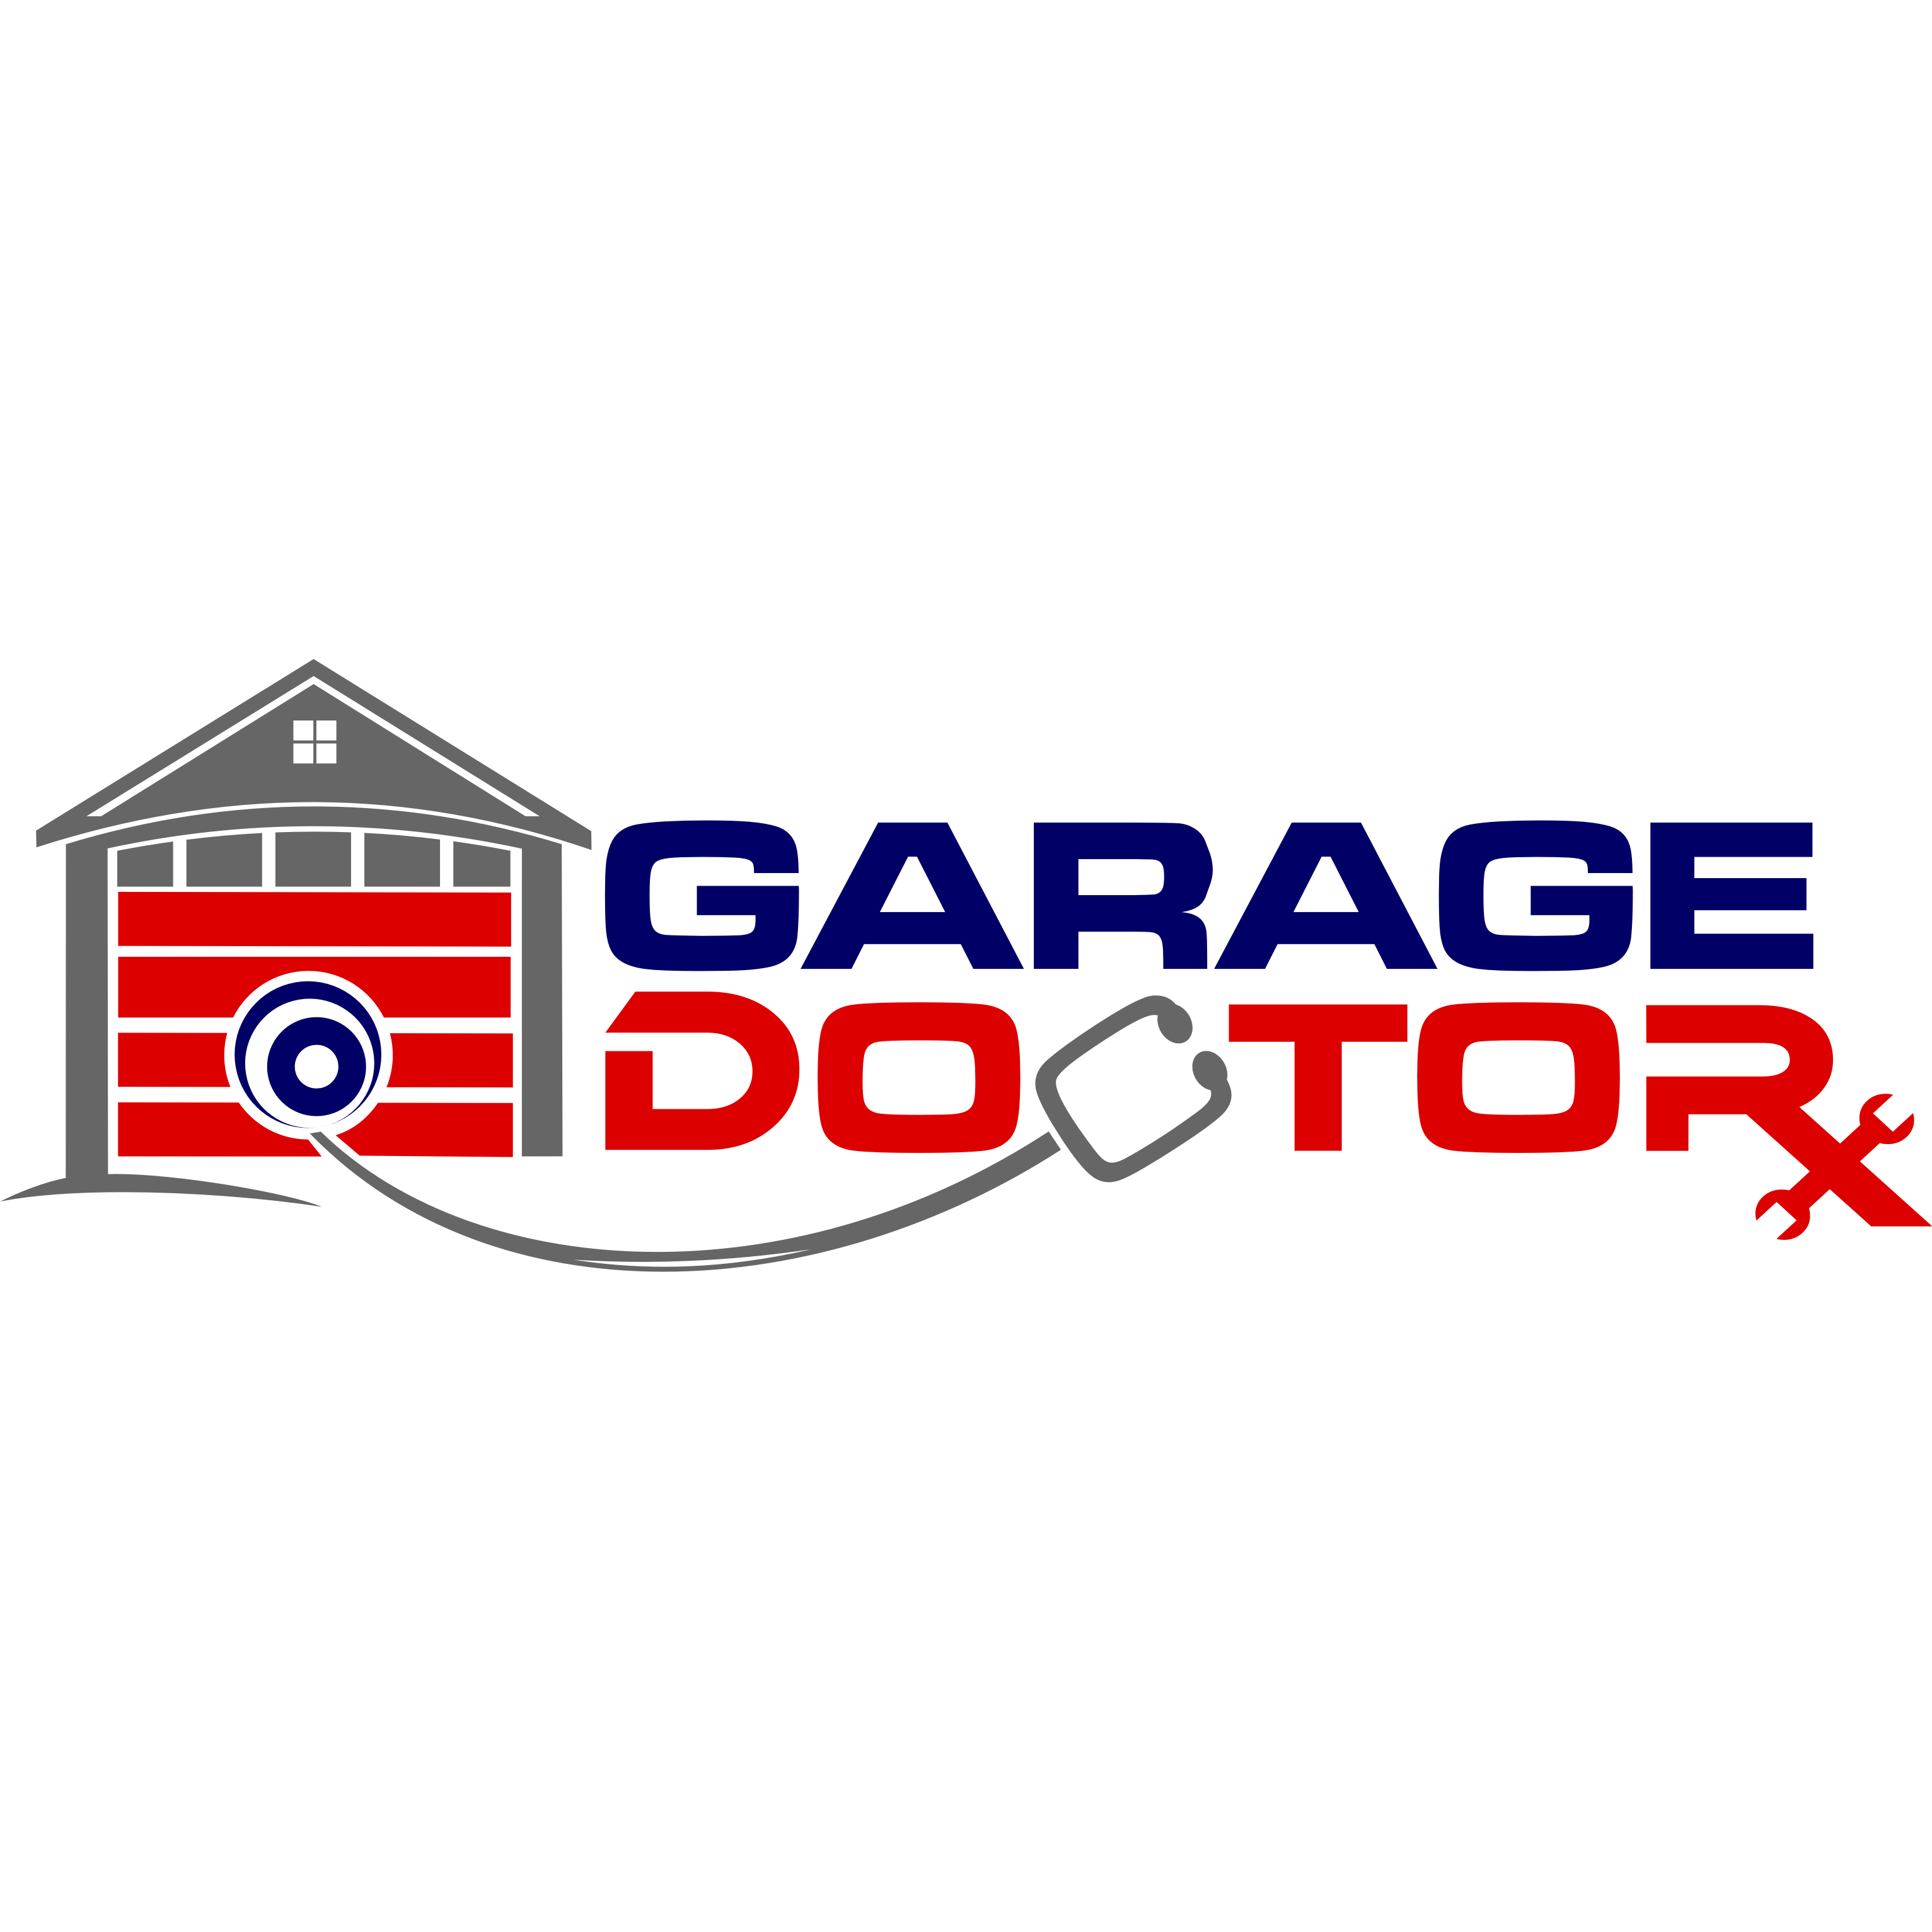 Garage Doctor Coupons Near Me In 8coupons